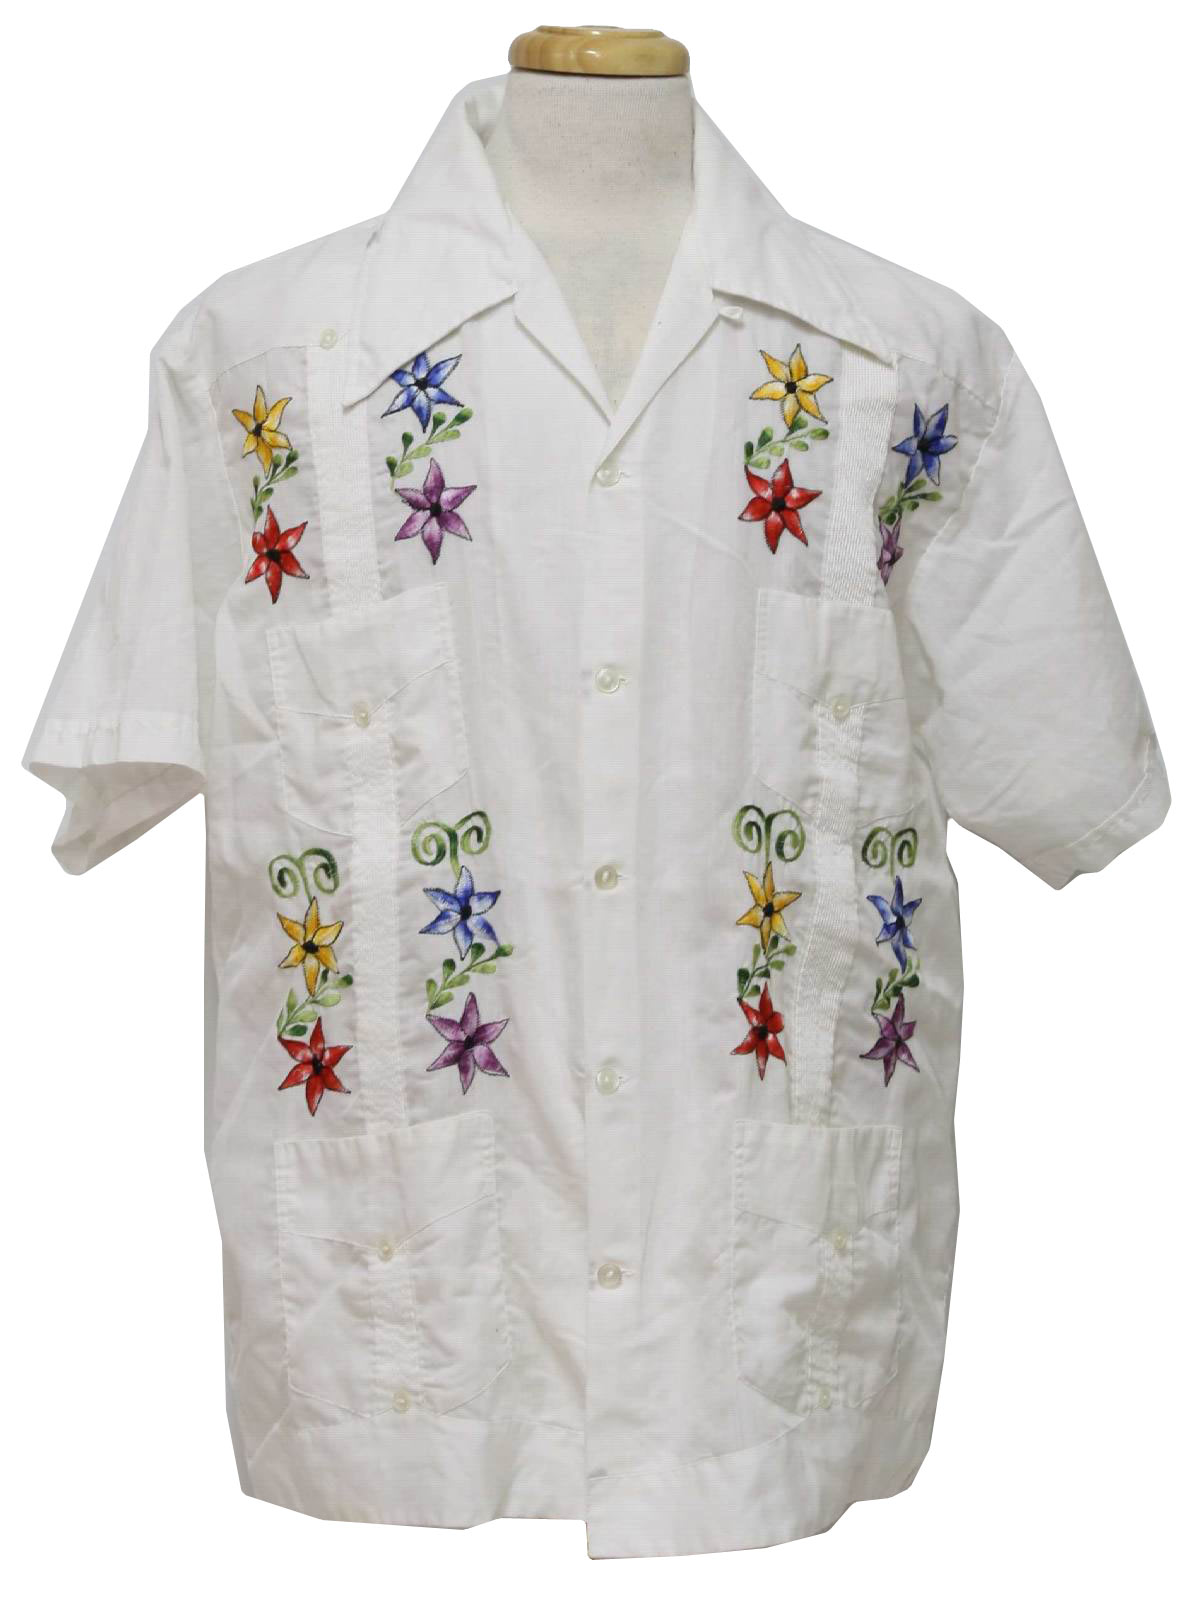 Embroidered Mexican Blouses Wholesale 52